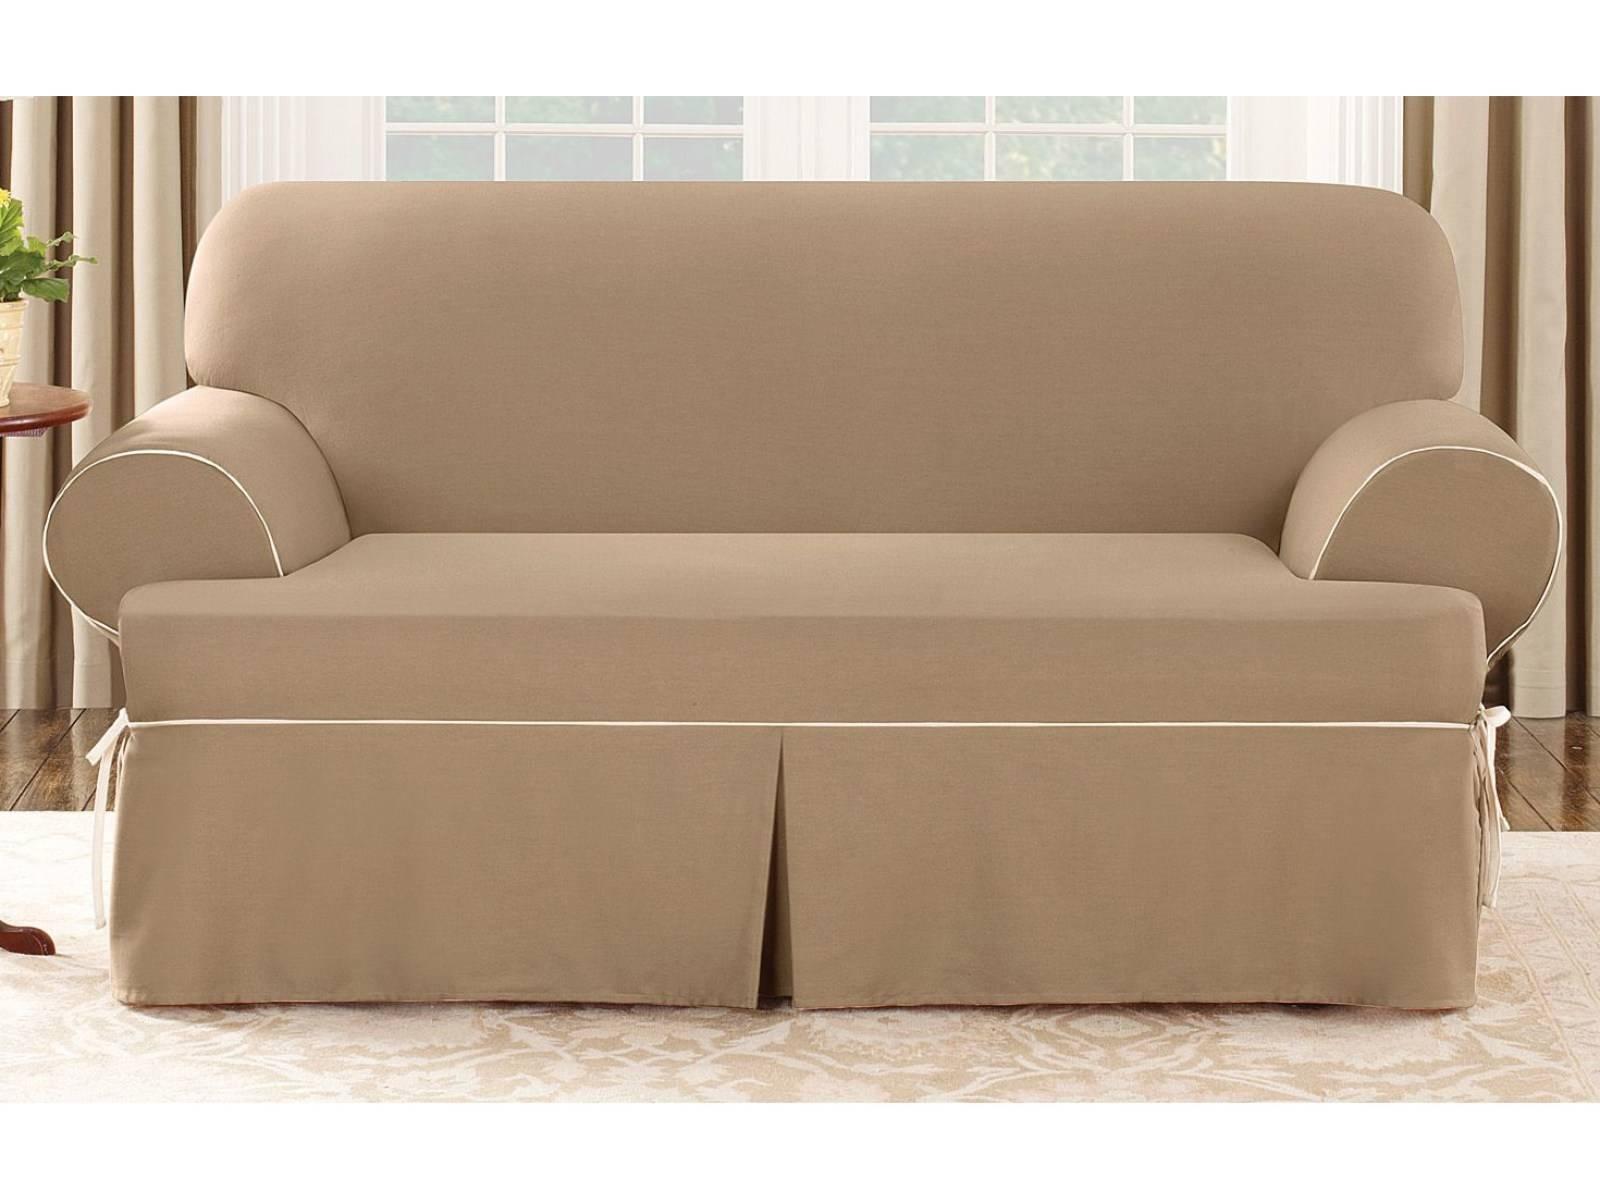 Sofas Center : Sectional Pit Sofa Unusual Images Inspirations The pertaining to Pit Sofas (Image 26 of 30)